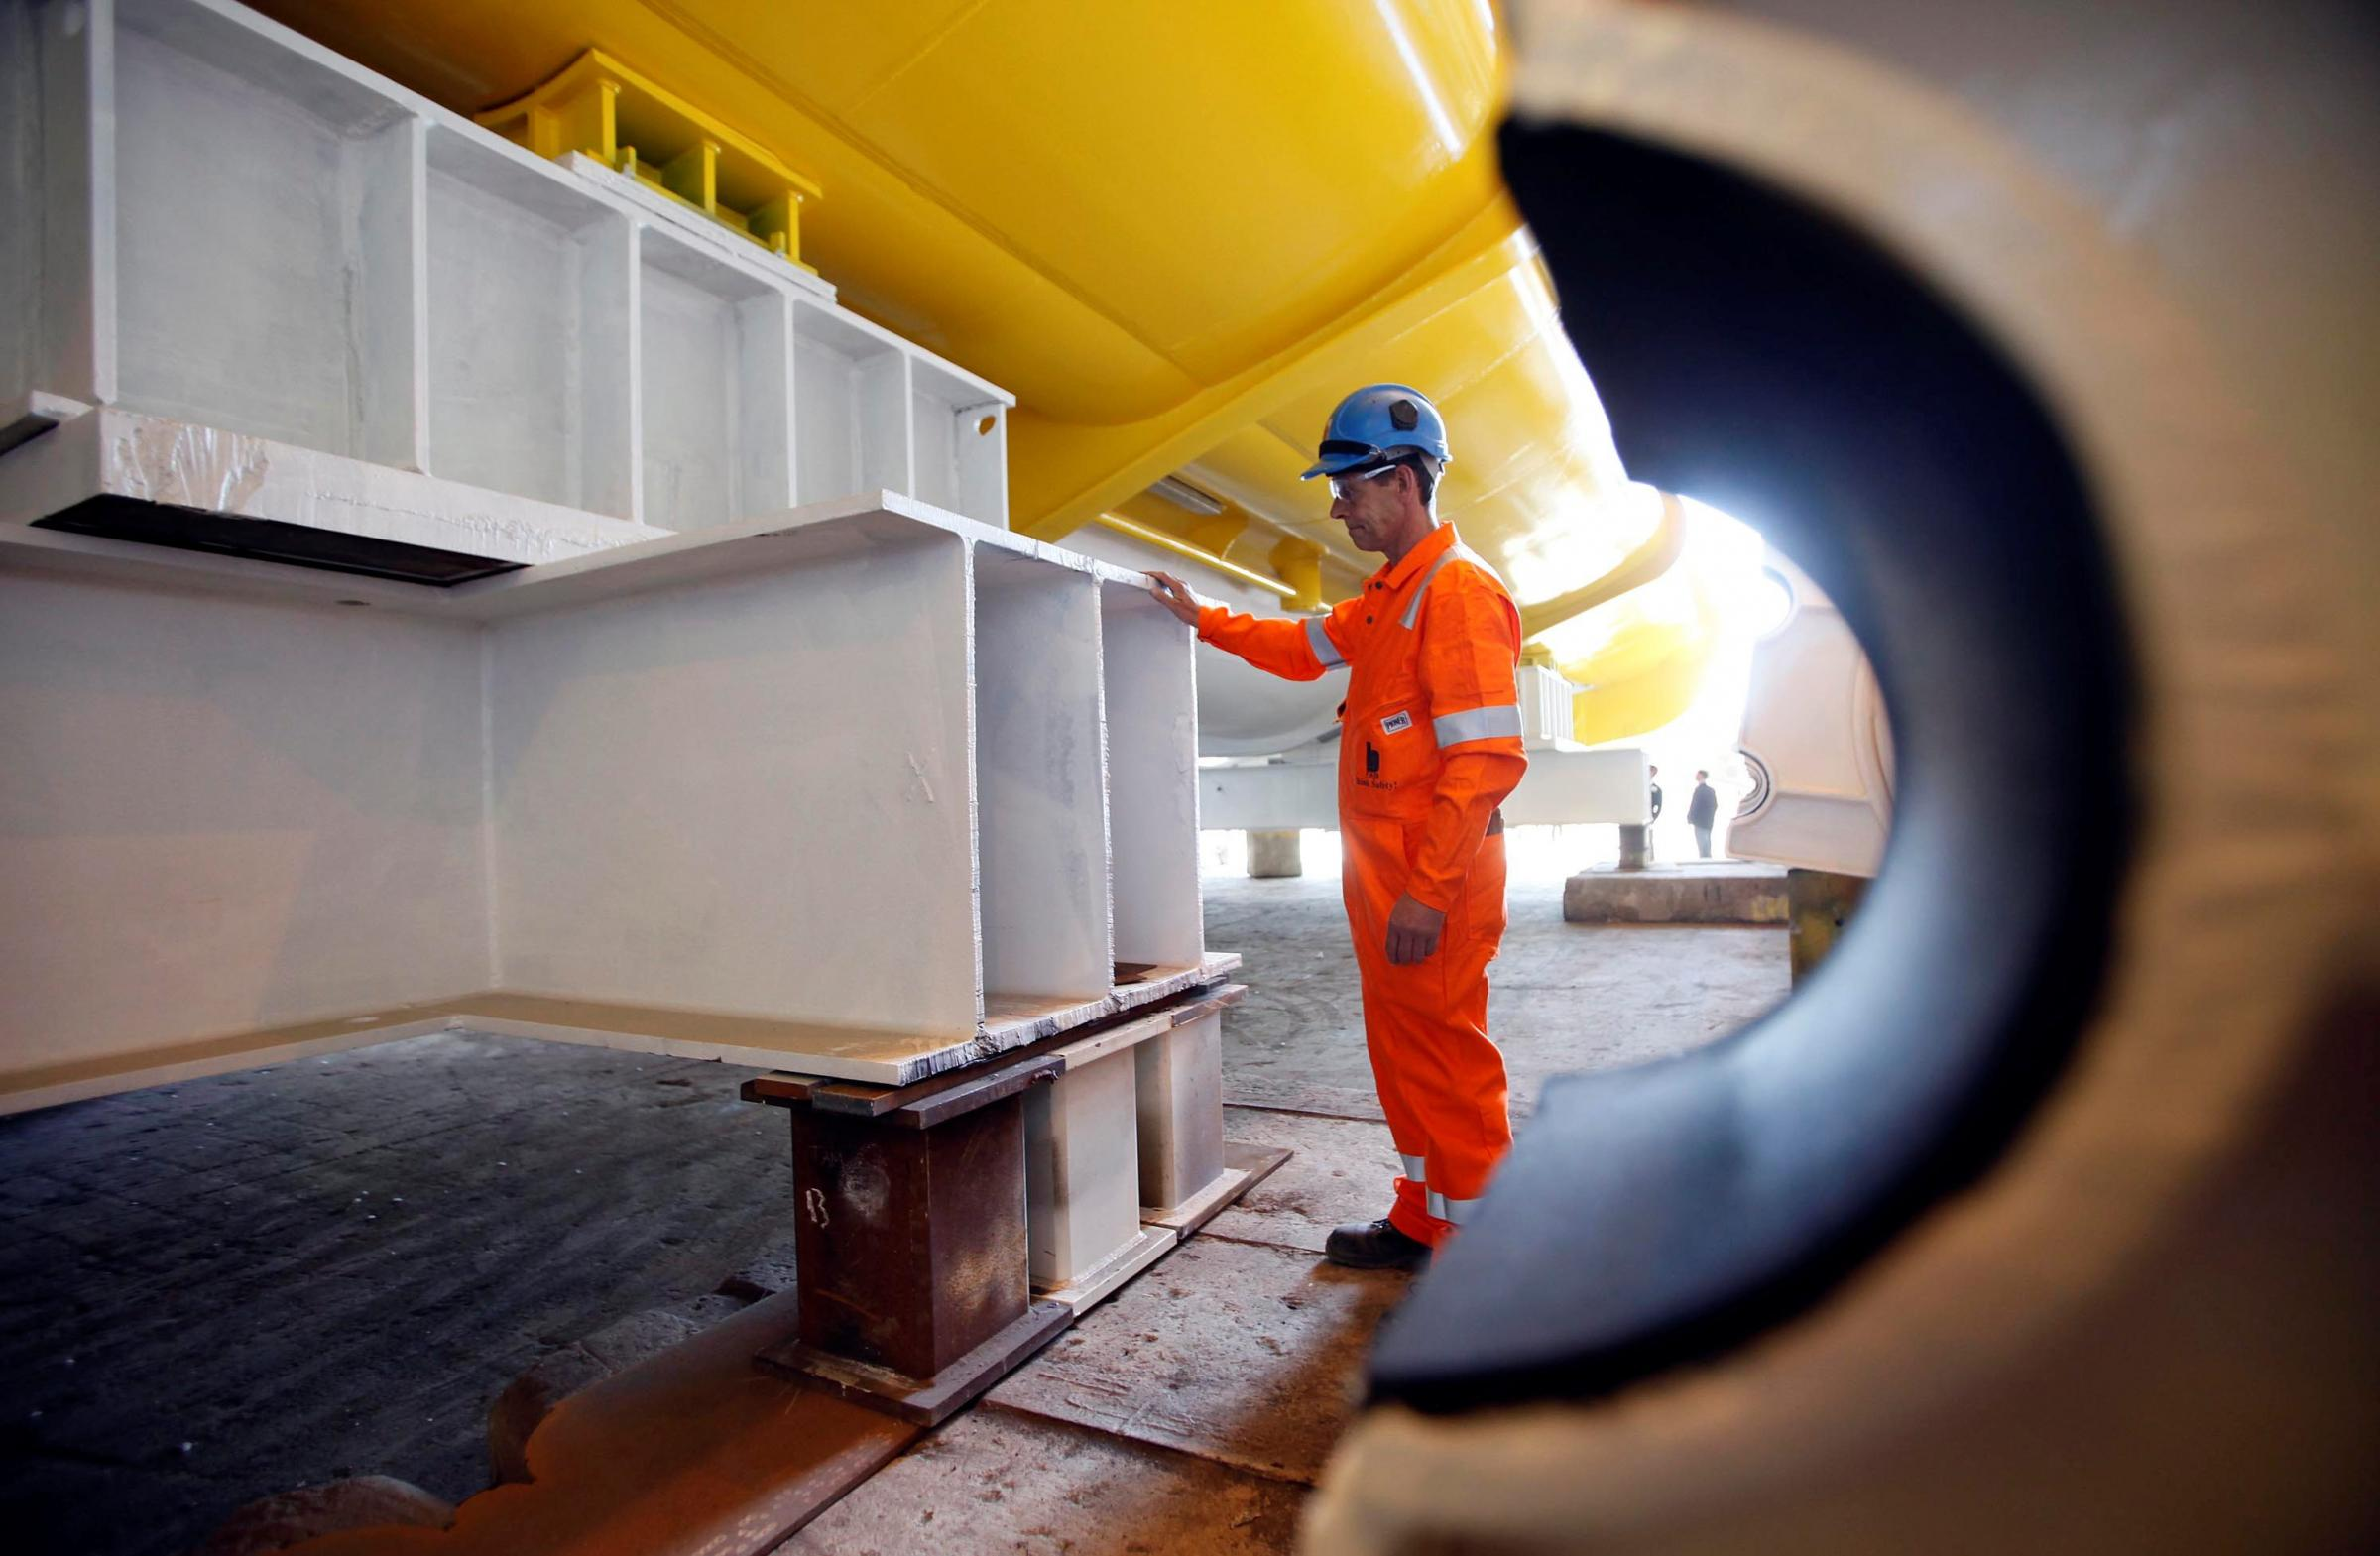 BiFab last year secured a £100 million contract for part of the £2.6 billion Beatrice Offshore Windfarm project